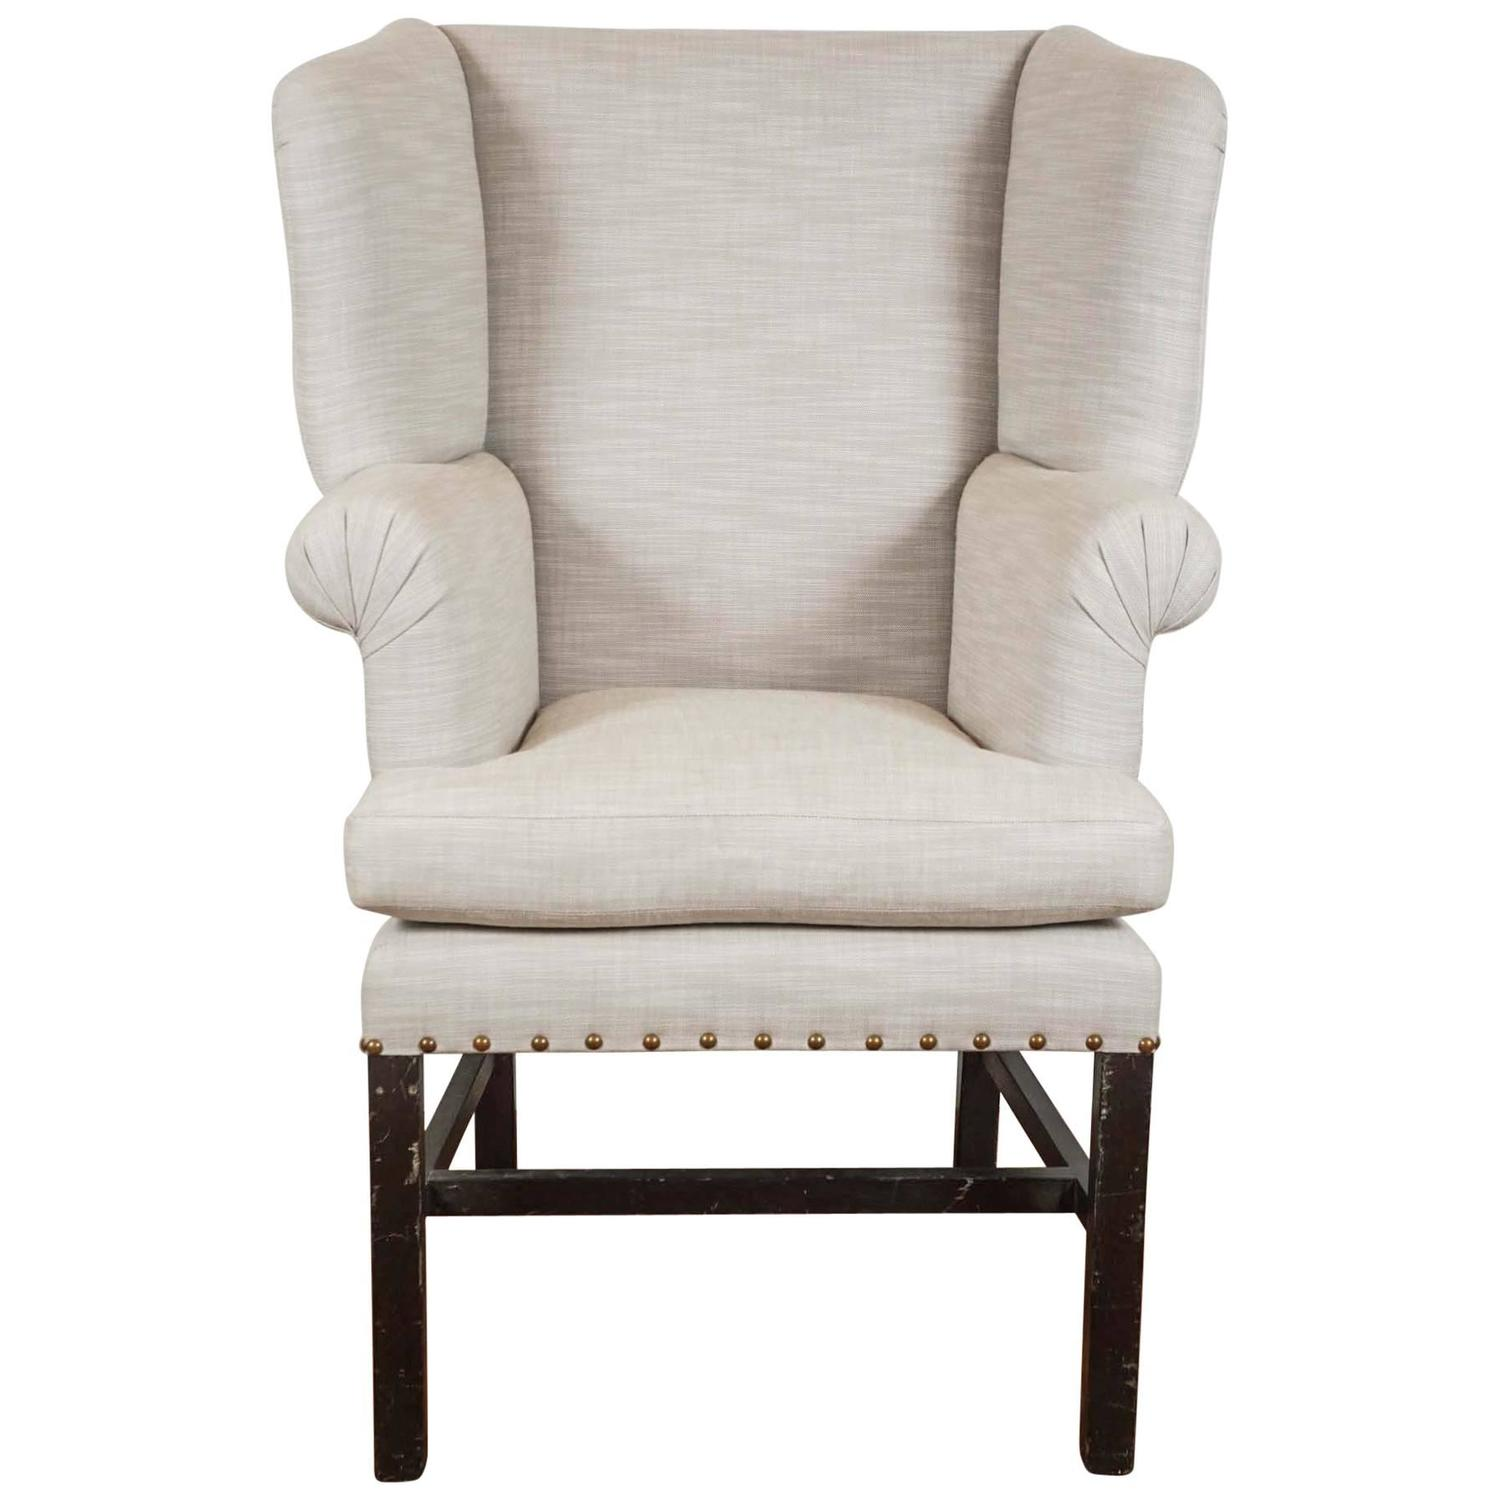 Petite Chairs Petite Wingback Chair For Sale At 1stdibs